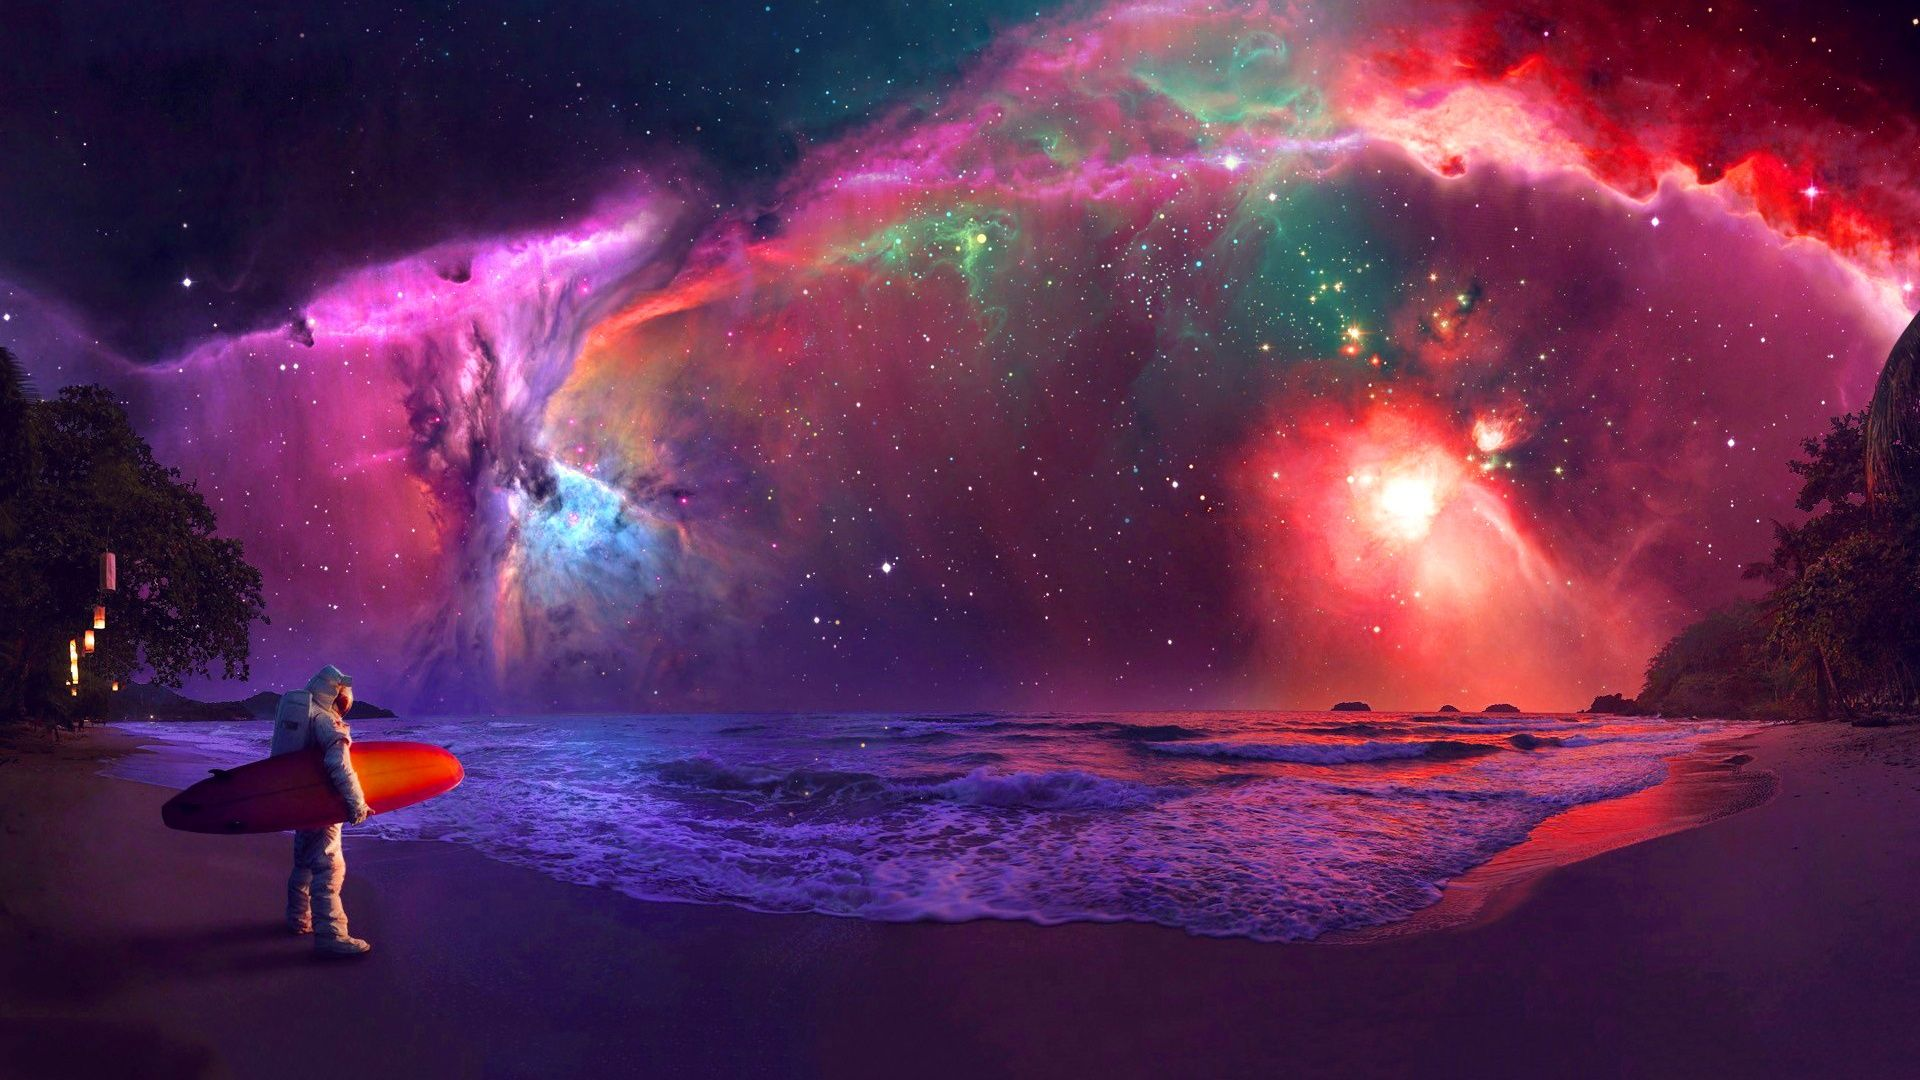 Trippy Astronaut In Space Wallpapers Top Free Trippy Astronaut